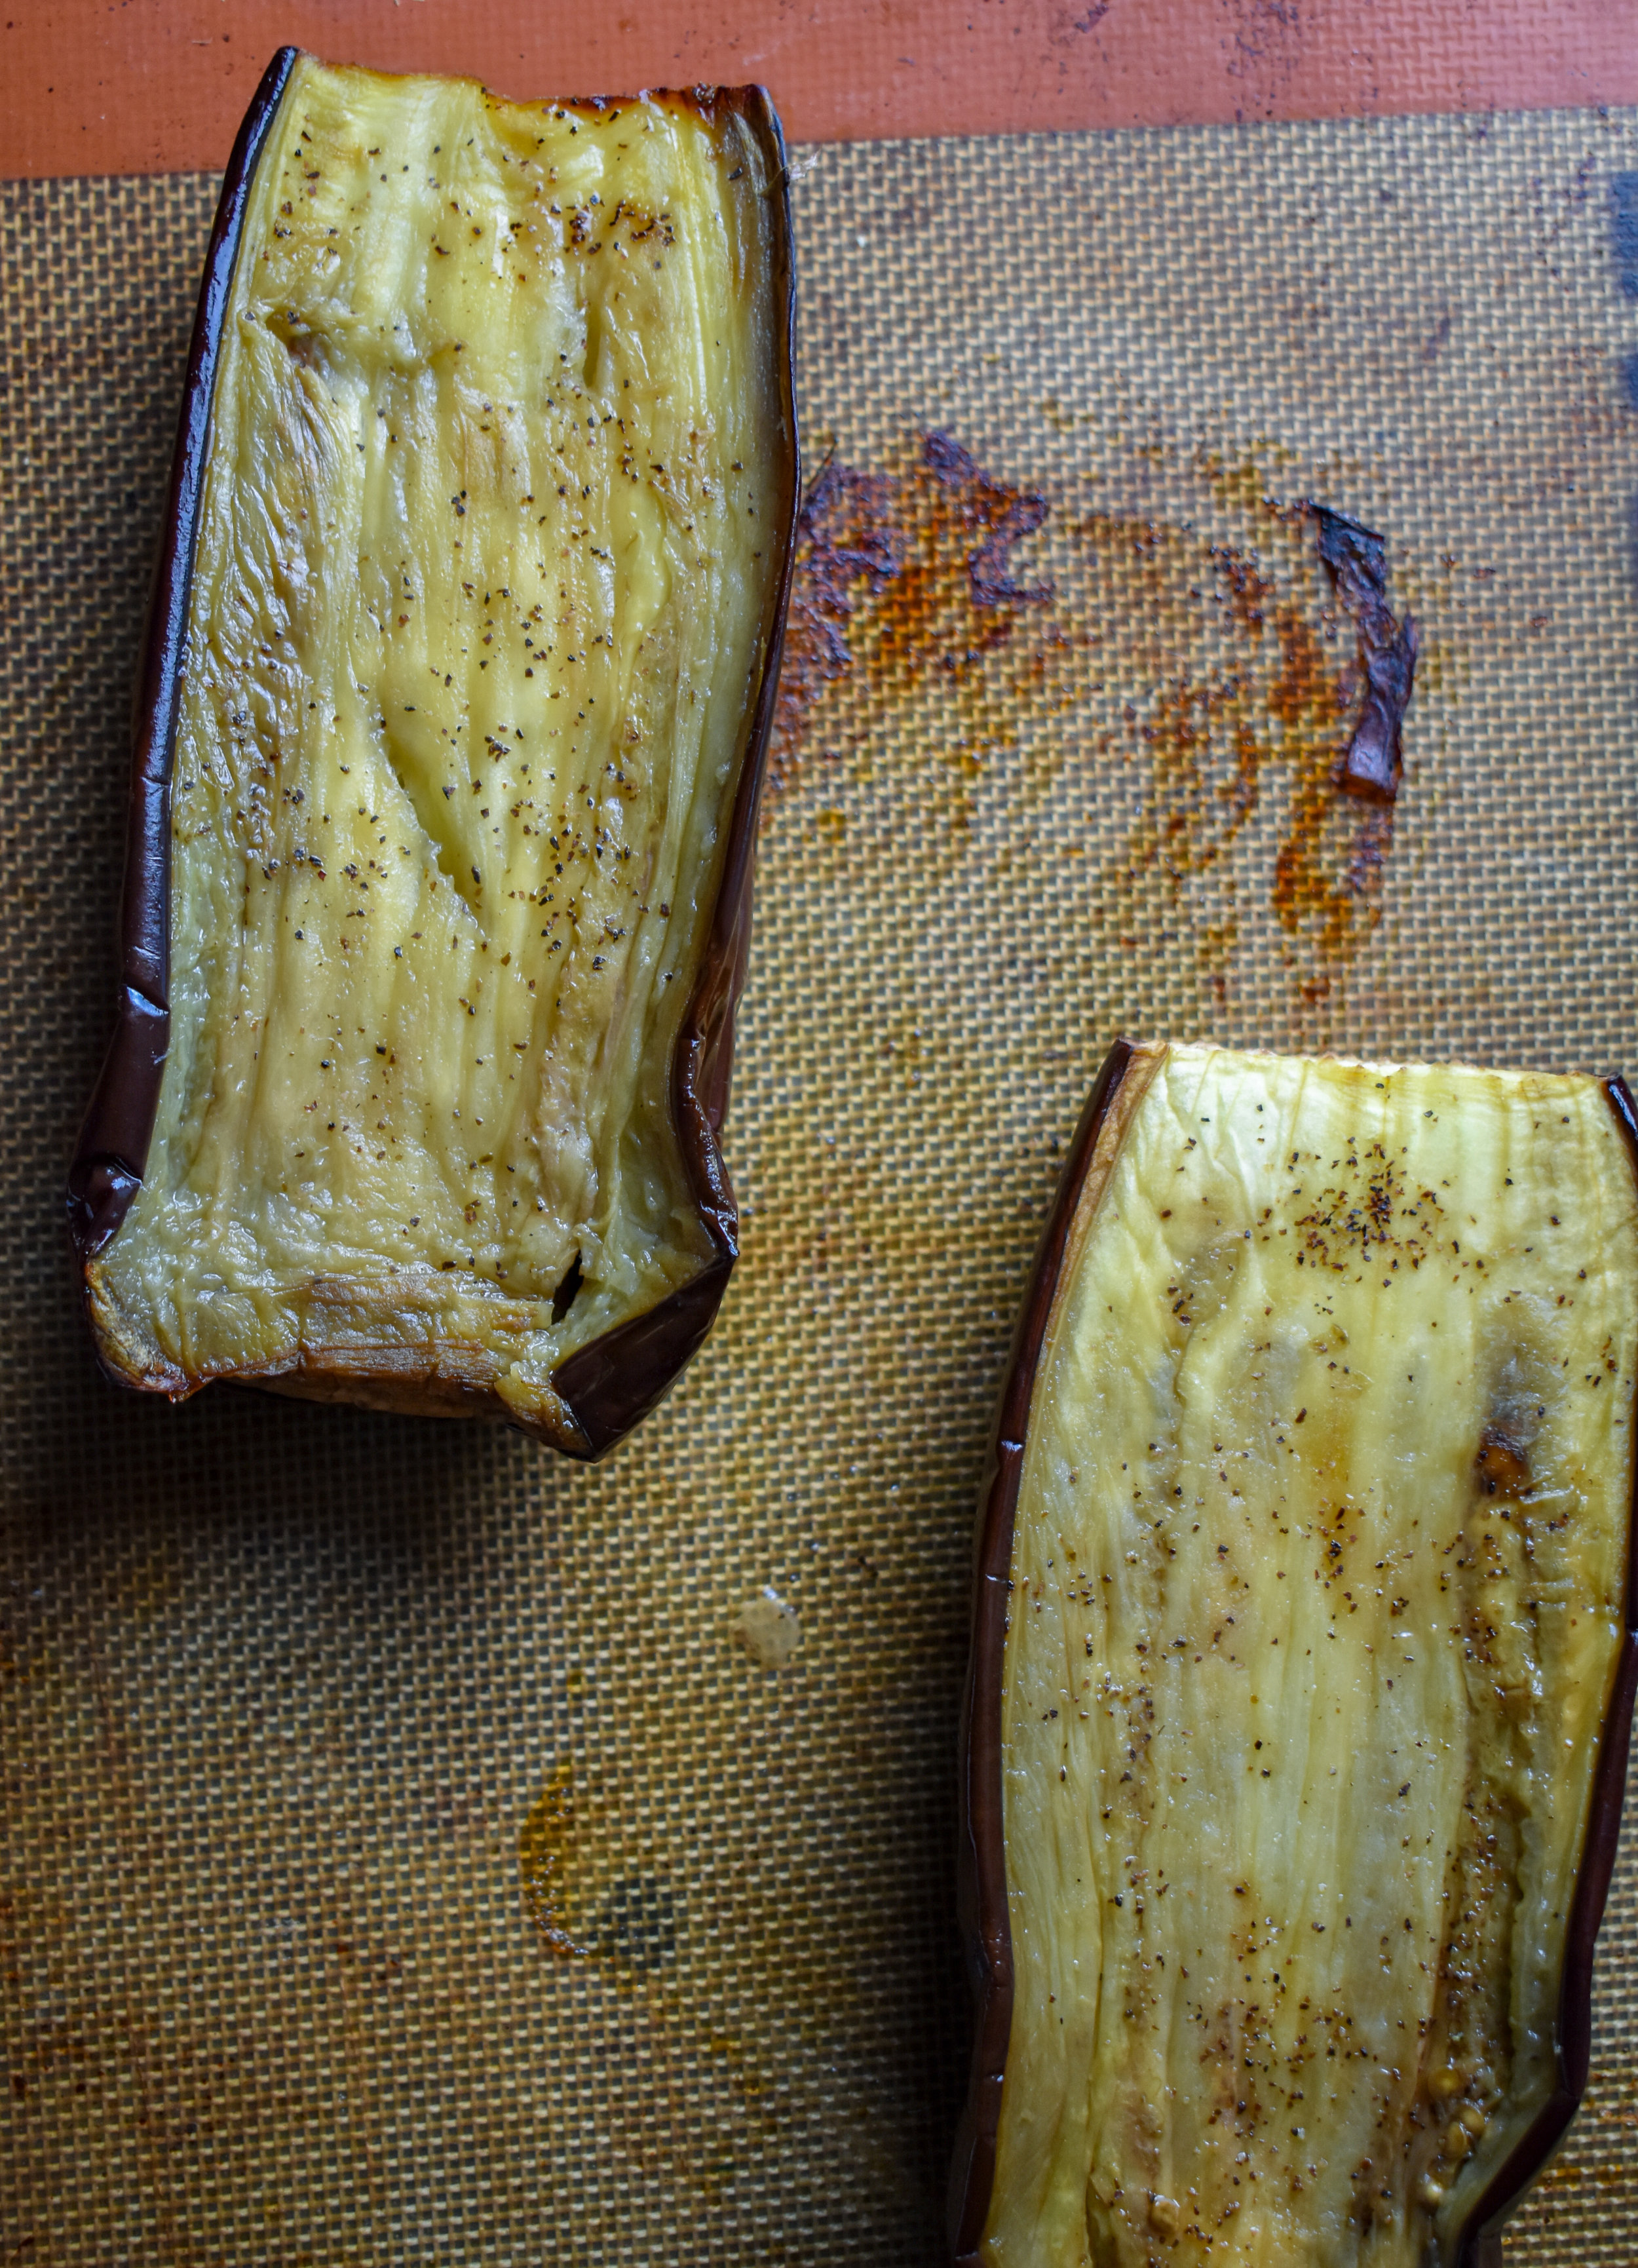 1. Cut your eggplant in 1/2 long ways. Brush on or rub on 1 tbl of olive oil and sprinkle with a pinch of salt + pepper. Place the halves face down on a parchment-lined or silpat-lined baking sheet. Place into the oven at 350F and cook for 40-45 minutes.